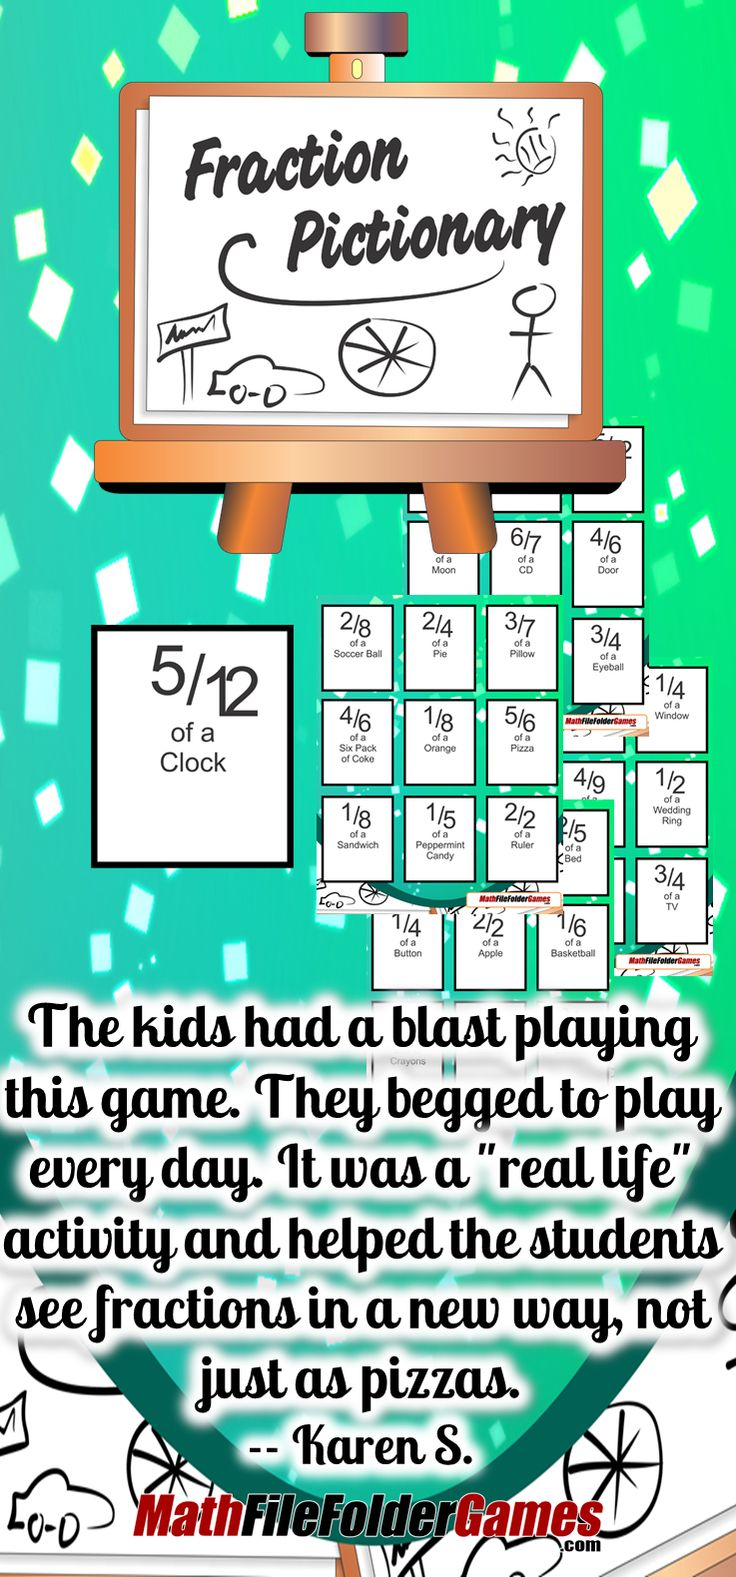 "#Fraction Pictionary: Recognizing Fractions with Drawing {Fraction Game} http://www.teacherspayteachers.com/Product/Fraction-Pictionary-Recognizing-Fractions-with-Drawing-Fraction-Game-1075575  ""The kids had a blast playing this game. They begged to play every day. It was a ""real life"" activity and helped the students see fractions in a new way, not just as pizzas."" Karen S. #math"